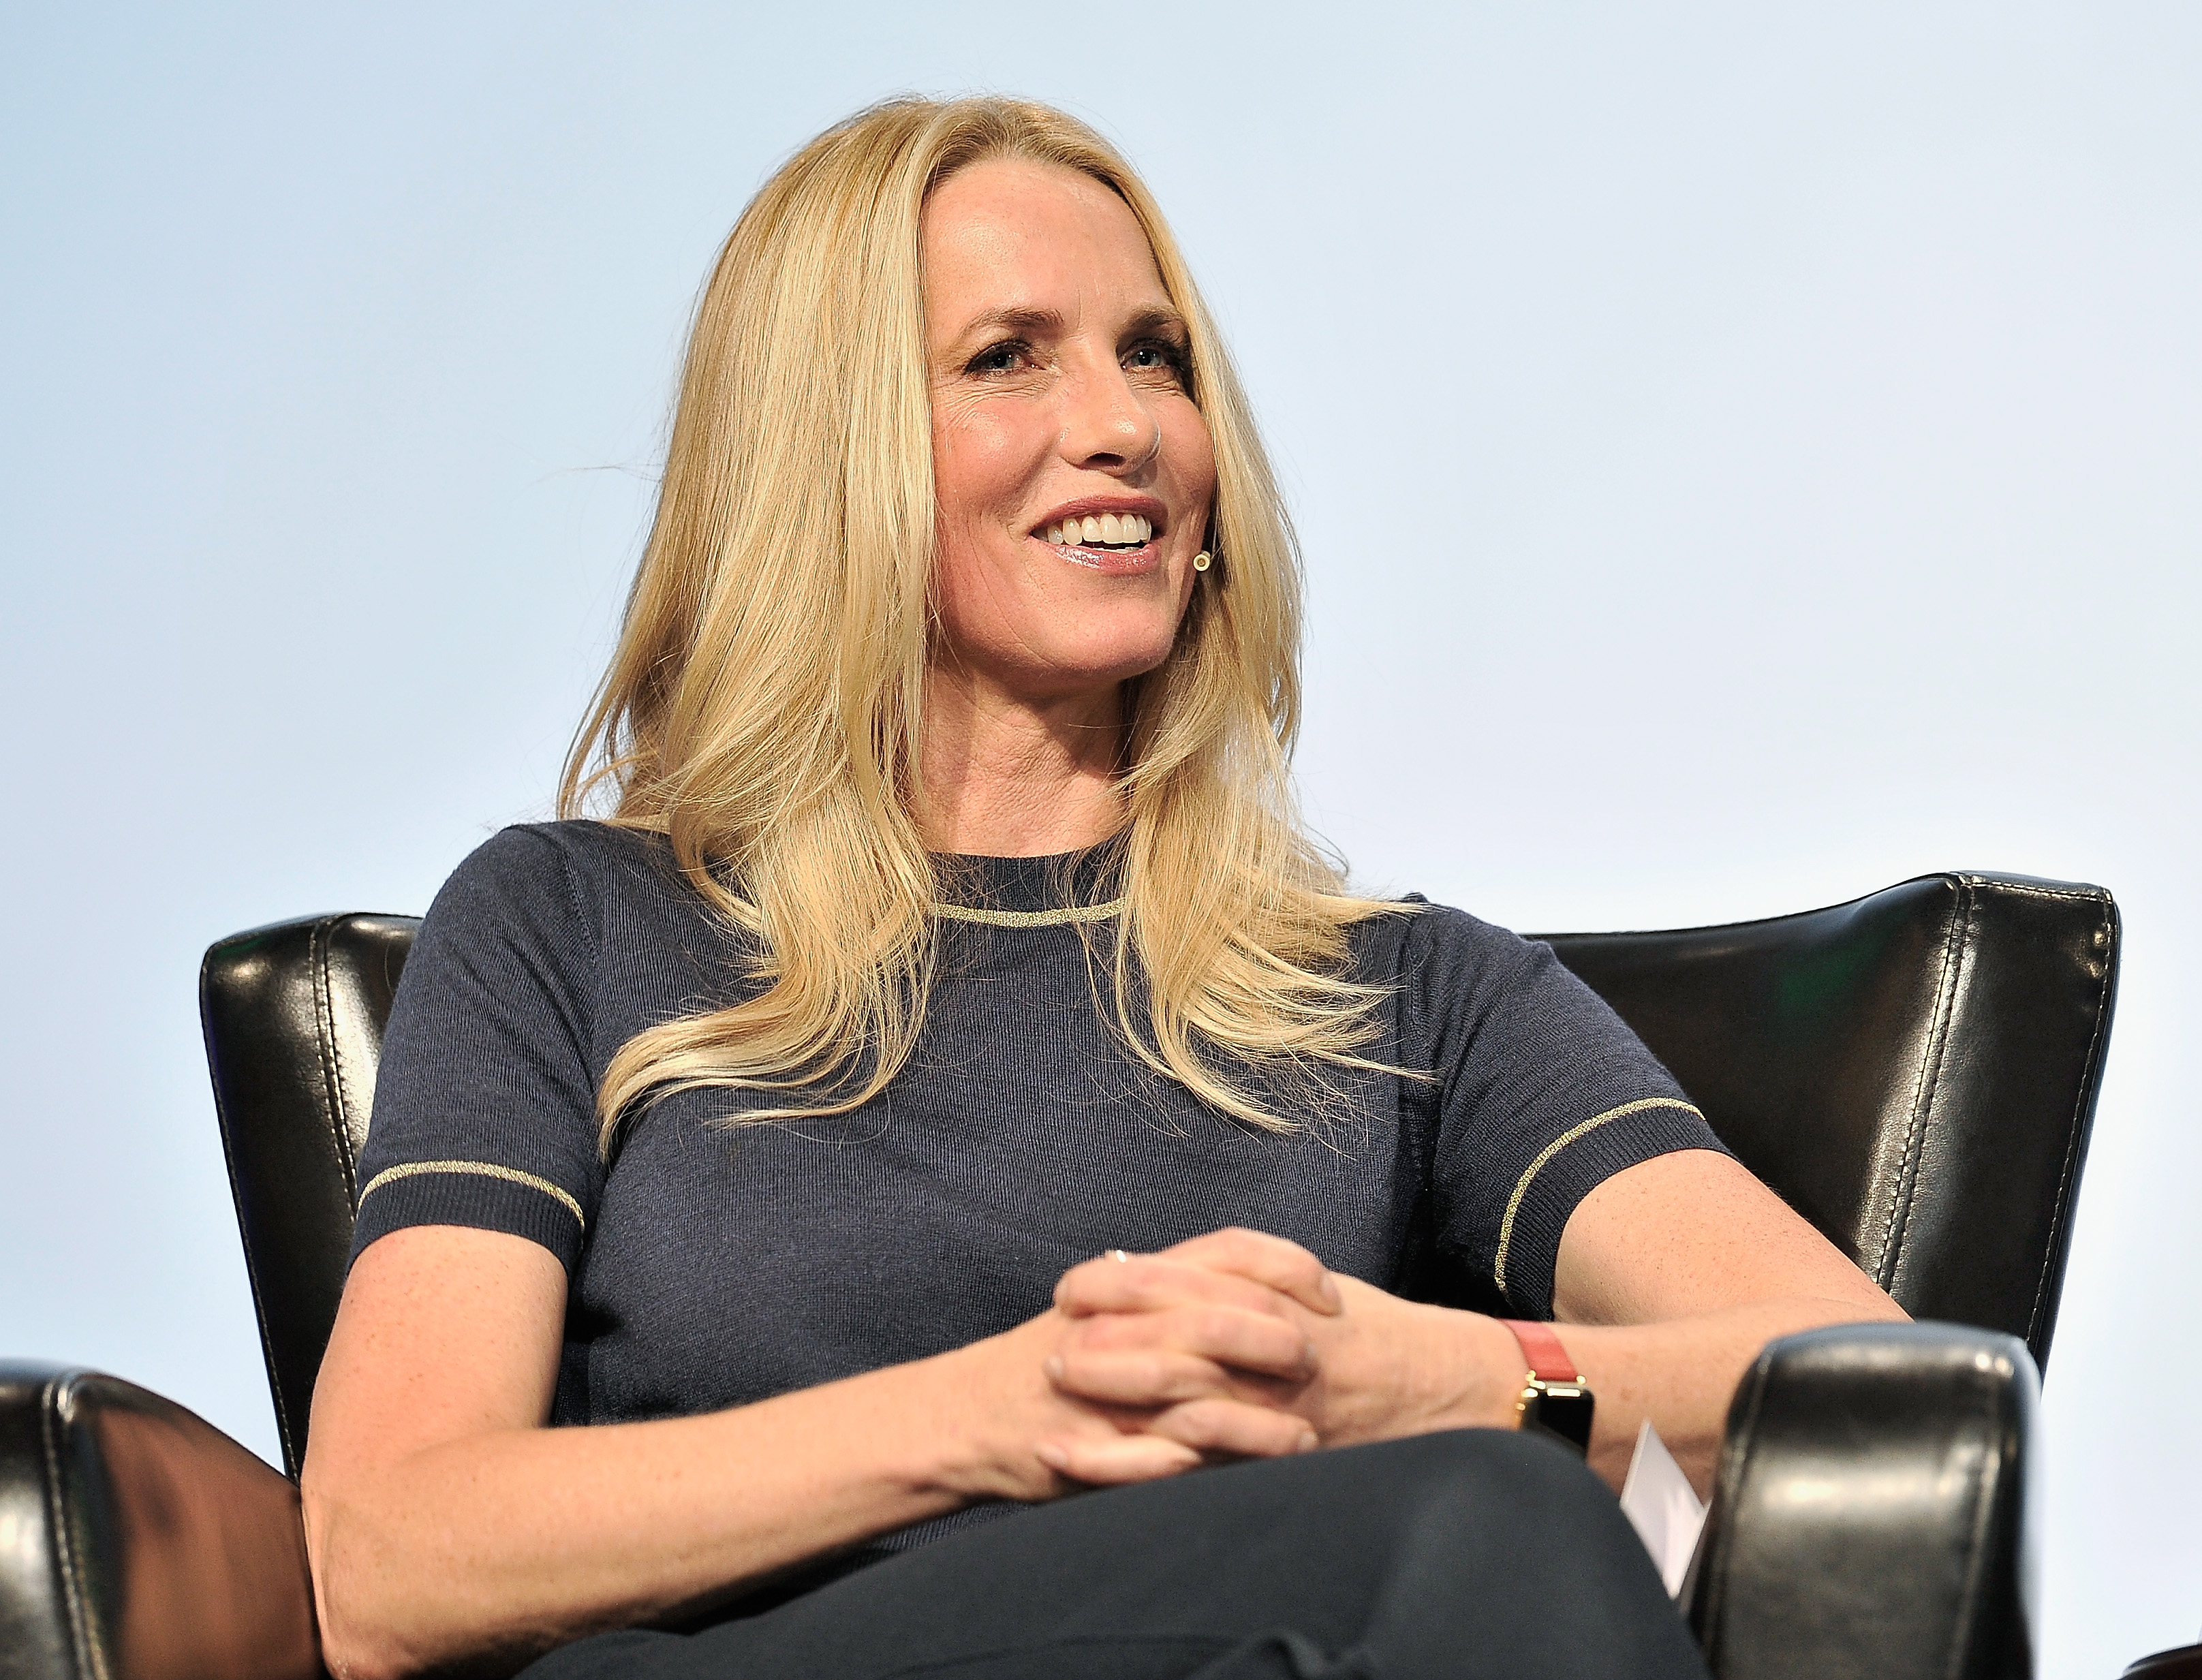 Emerson Collective Founder and President Laurene Powell Jobs speaks onstage during TechCrunch Disrupt SF 2017 at Pier 48 on September 20, 2017 in San Francisco, California.